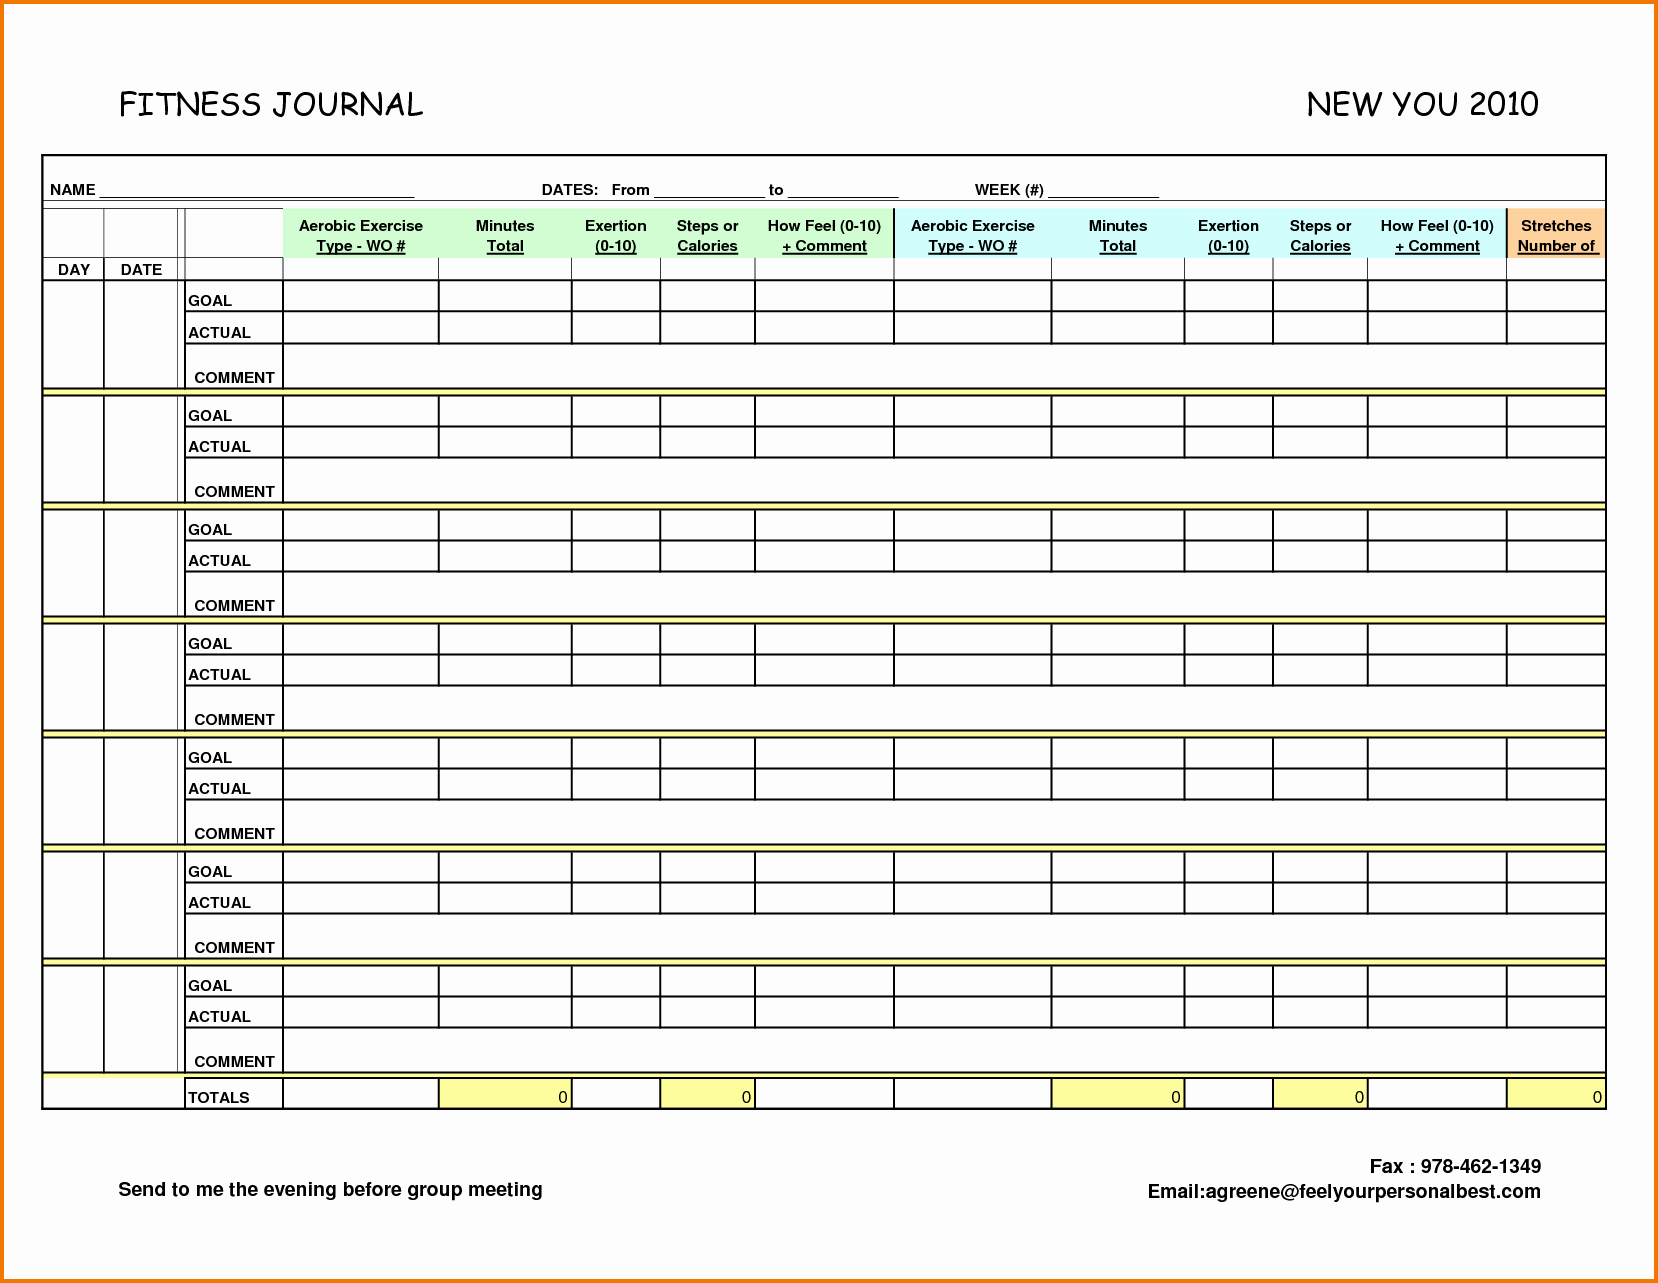 Online Food and Exercise Journal Unique 7 Food and Exercise Journal